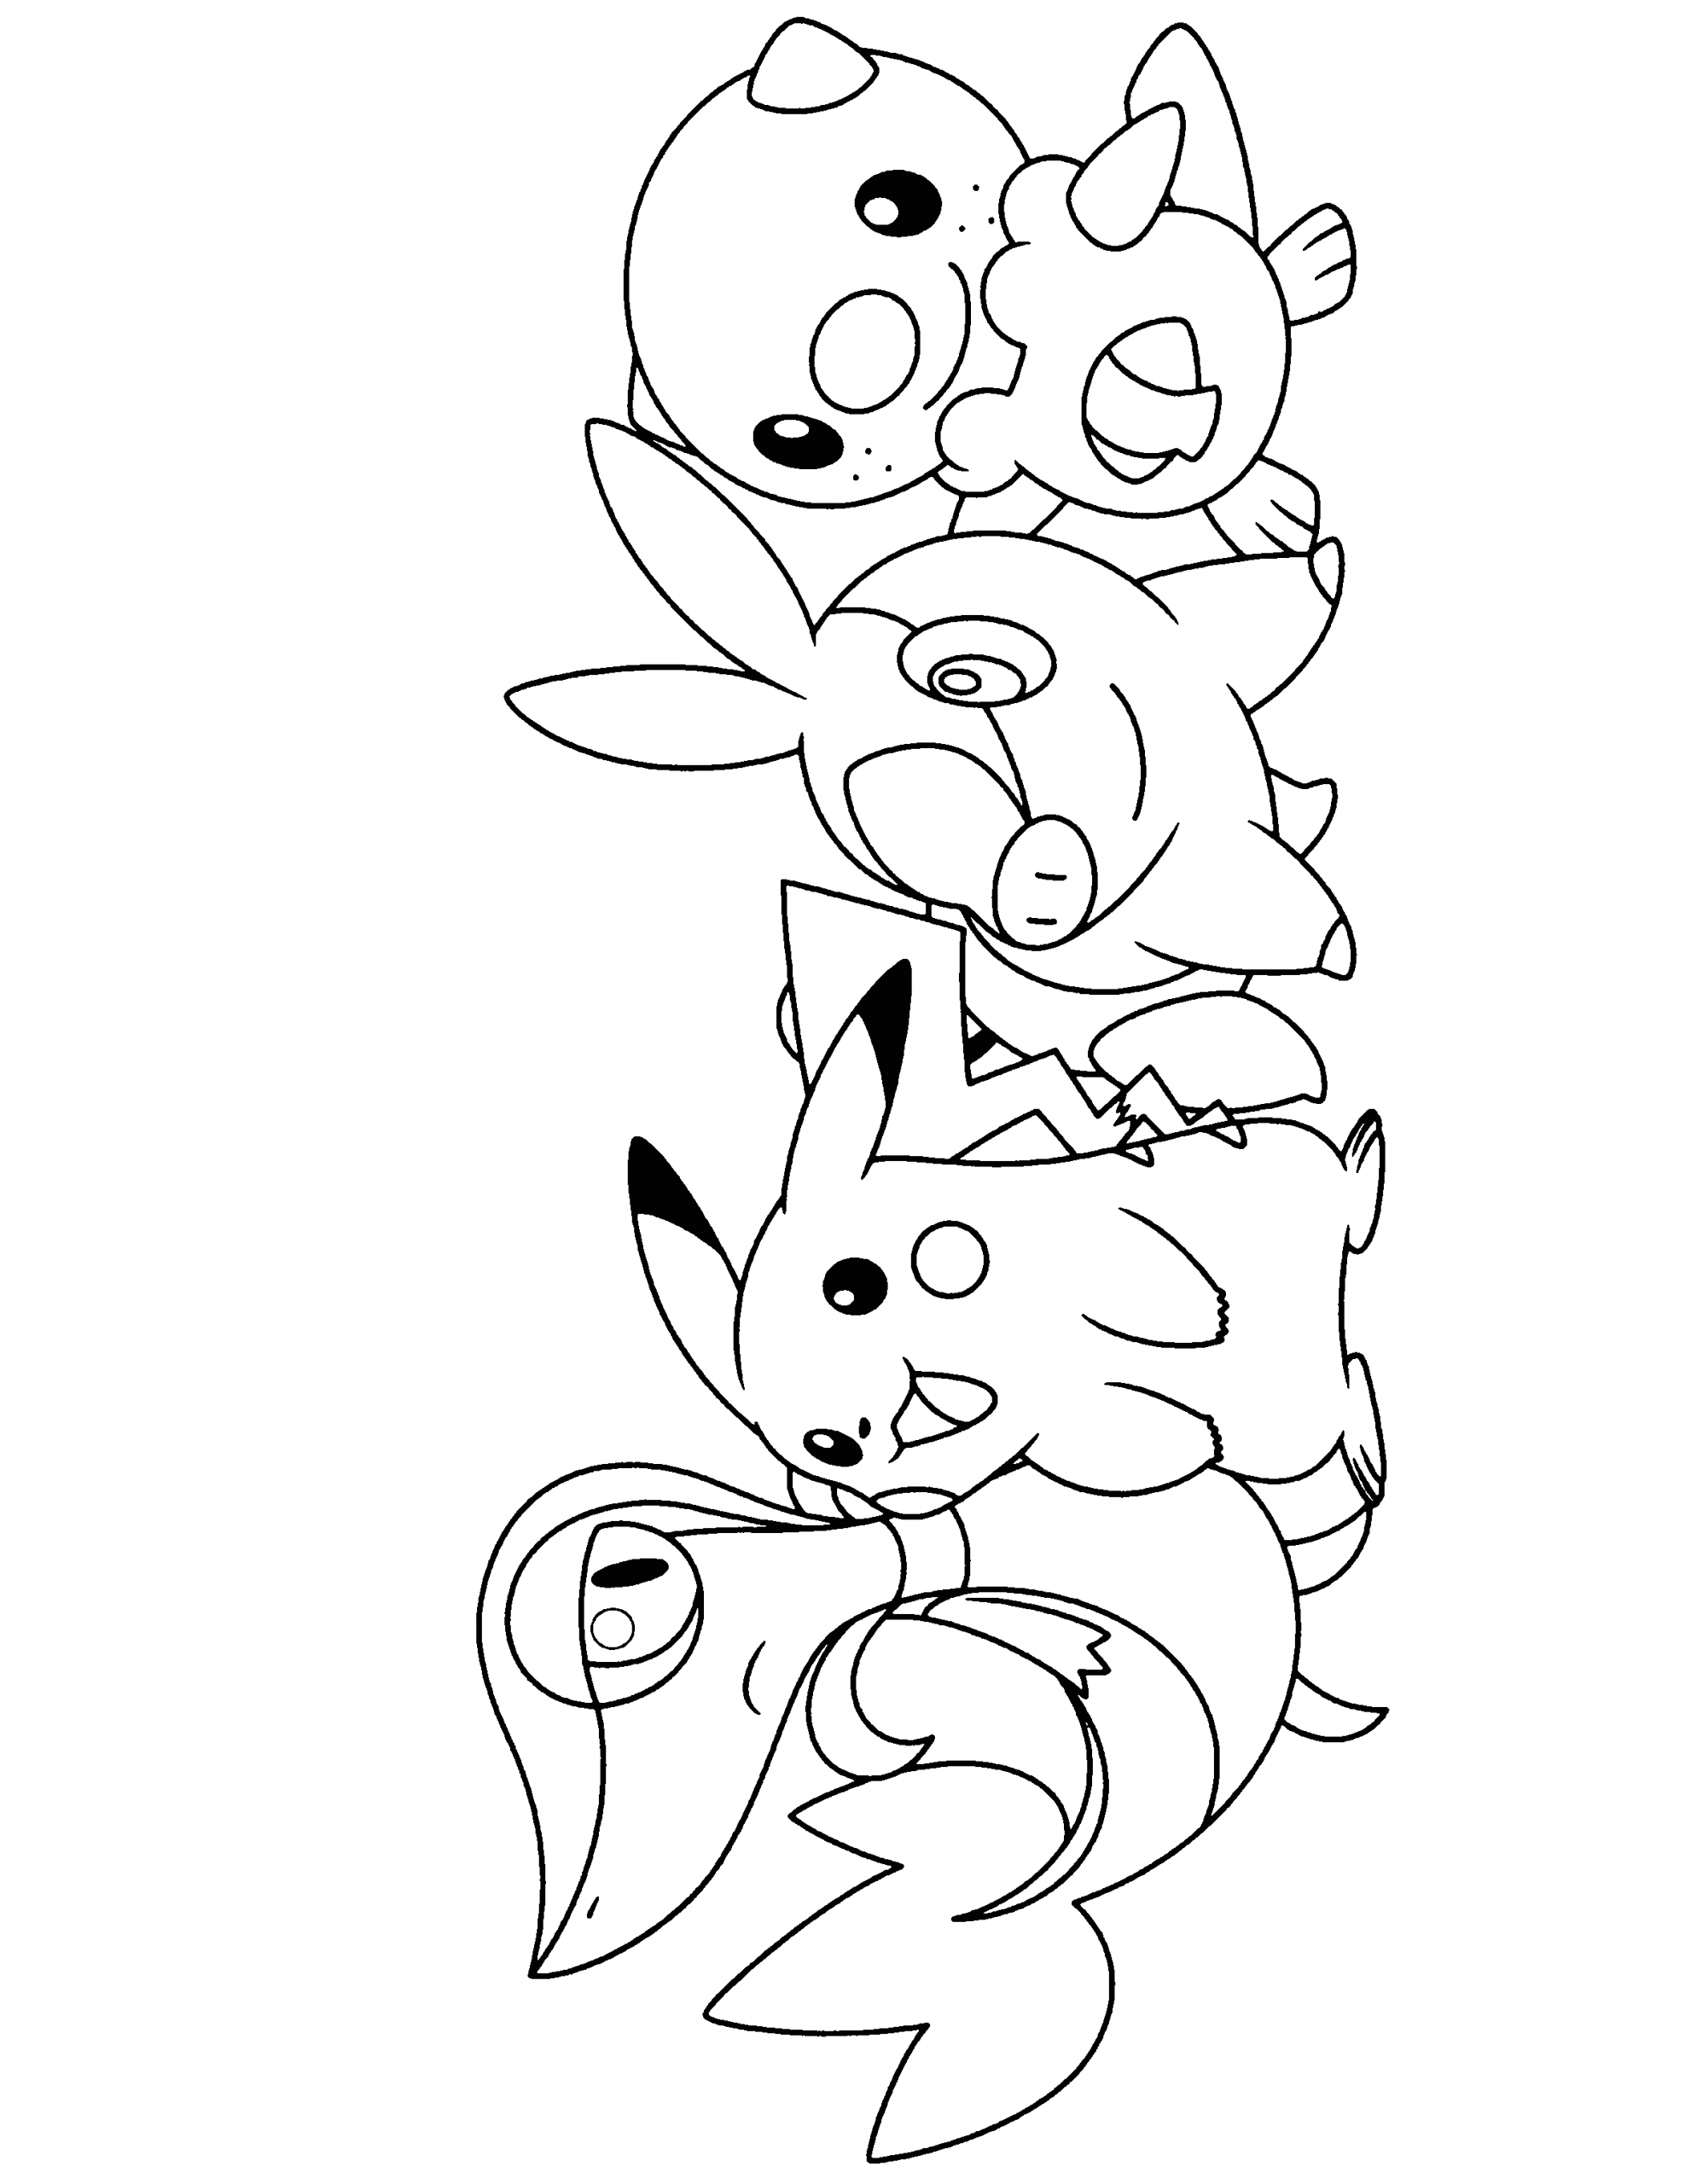 Pokemon Black and White Coloring Pages to Print Pokemon Black and White Printable Coloring Pages